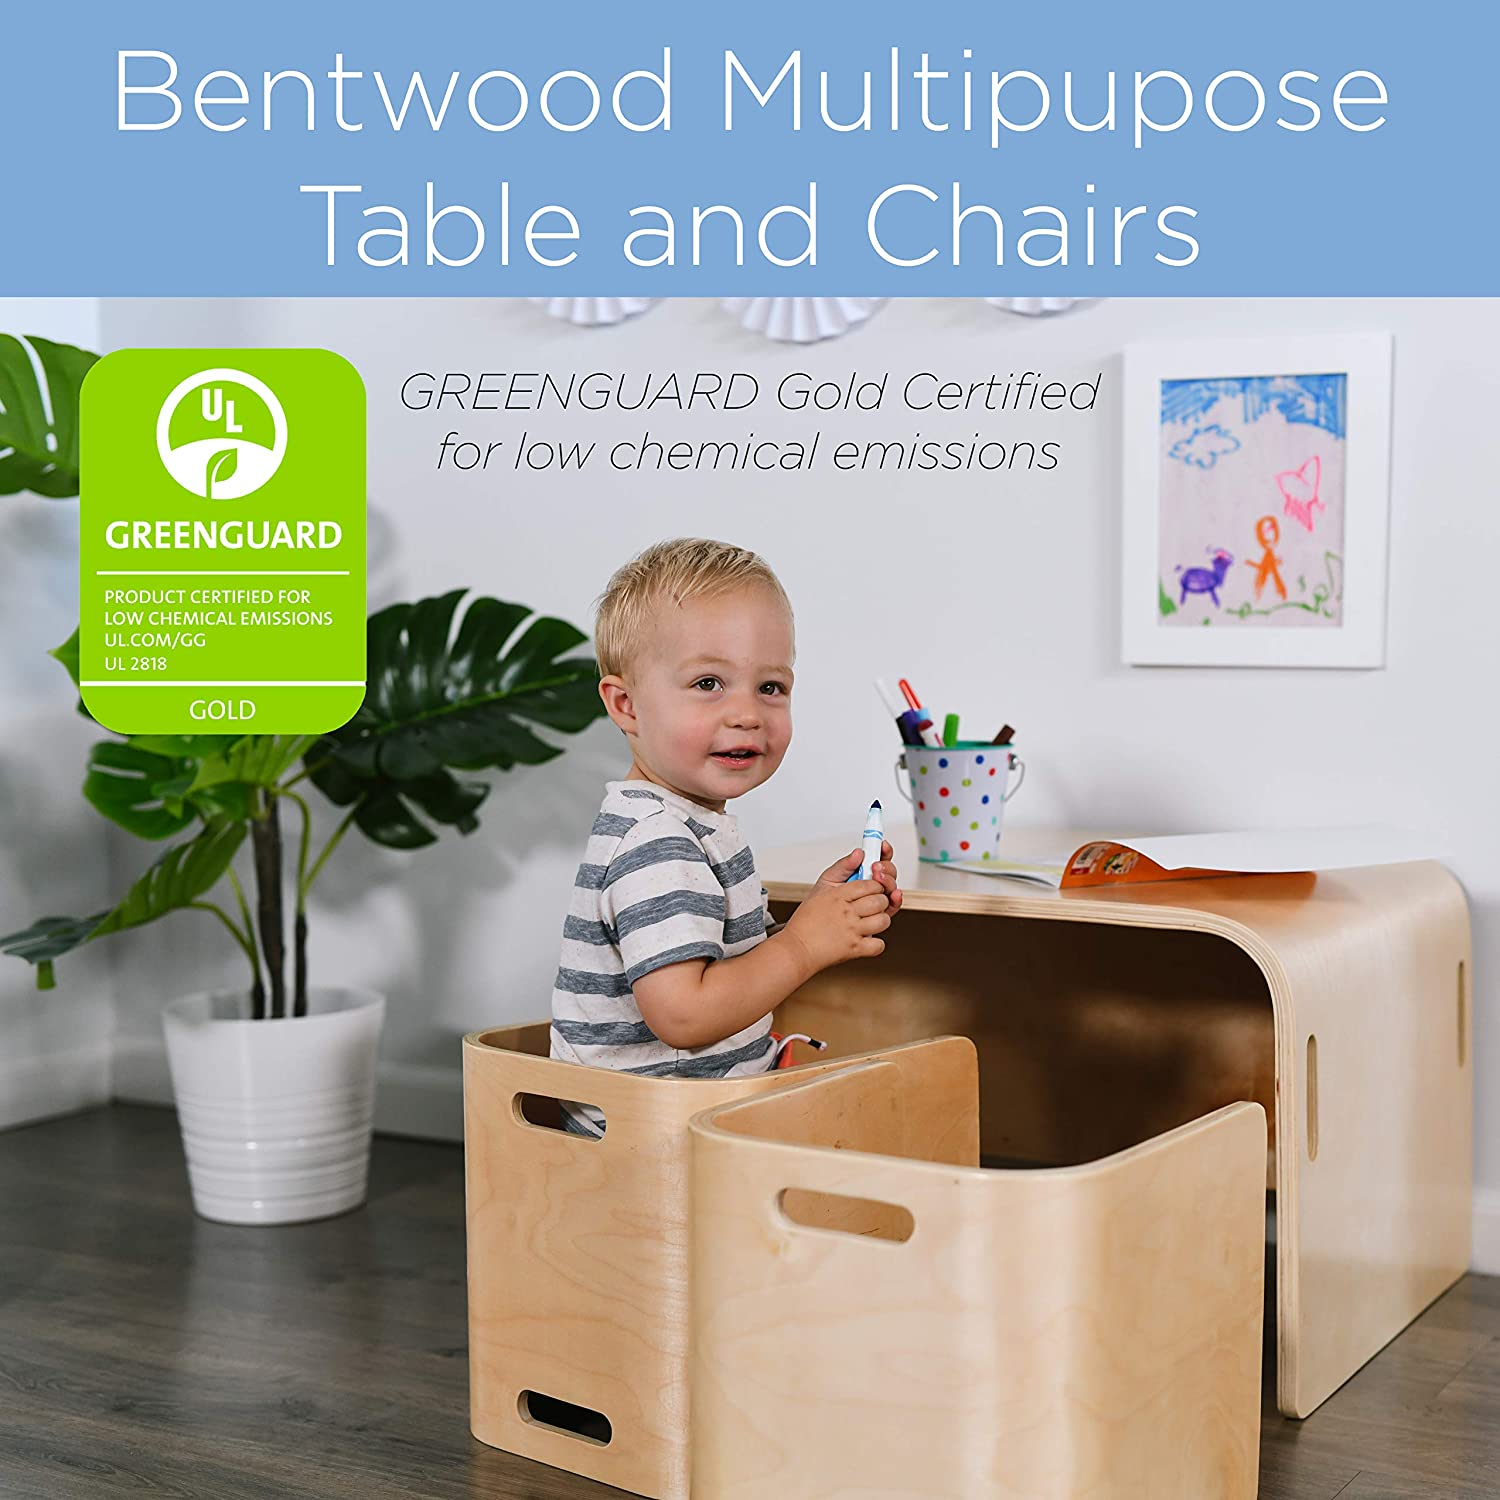 Peachy Ecr4Kids Bentwood Multipurpose Kids Table And Chair Set 3 Piece Adaptable Furniture Set Kids Learning Desk Certified And Safe No Assembly Beatyapartments Chair Design Images Beatyapartmentscom